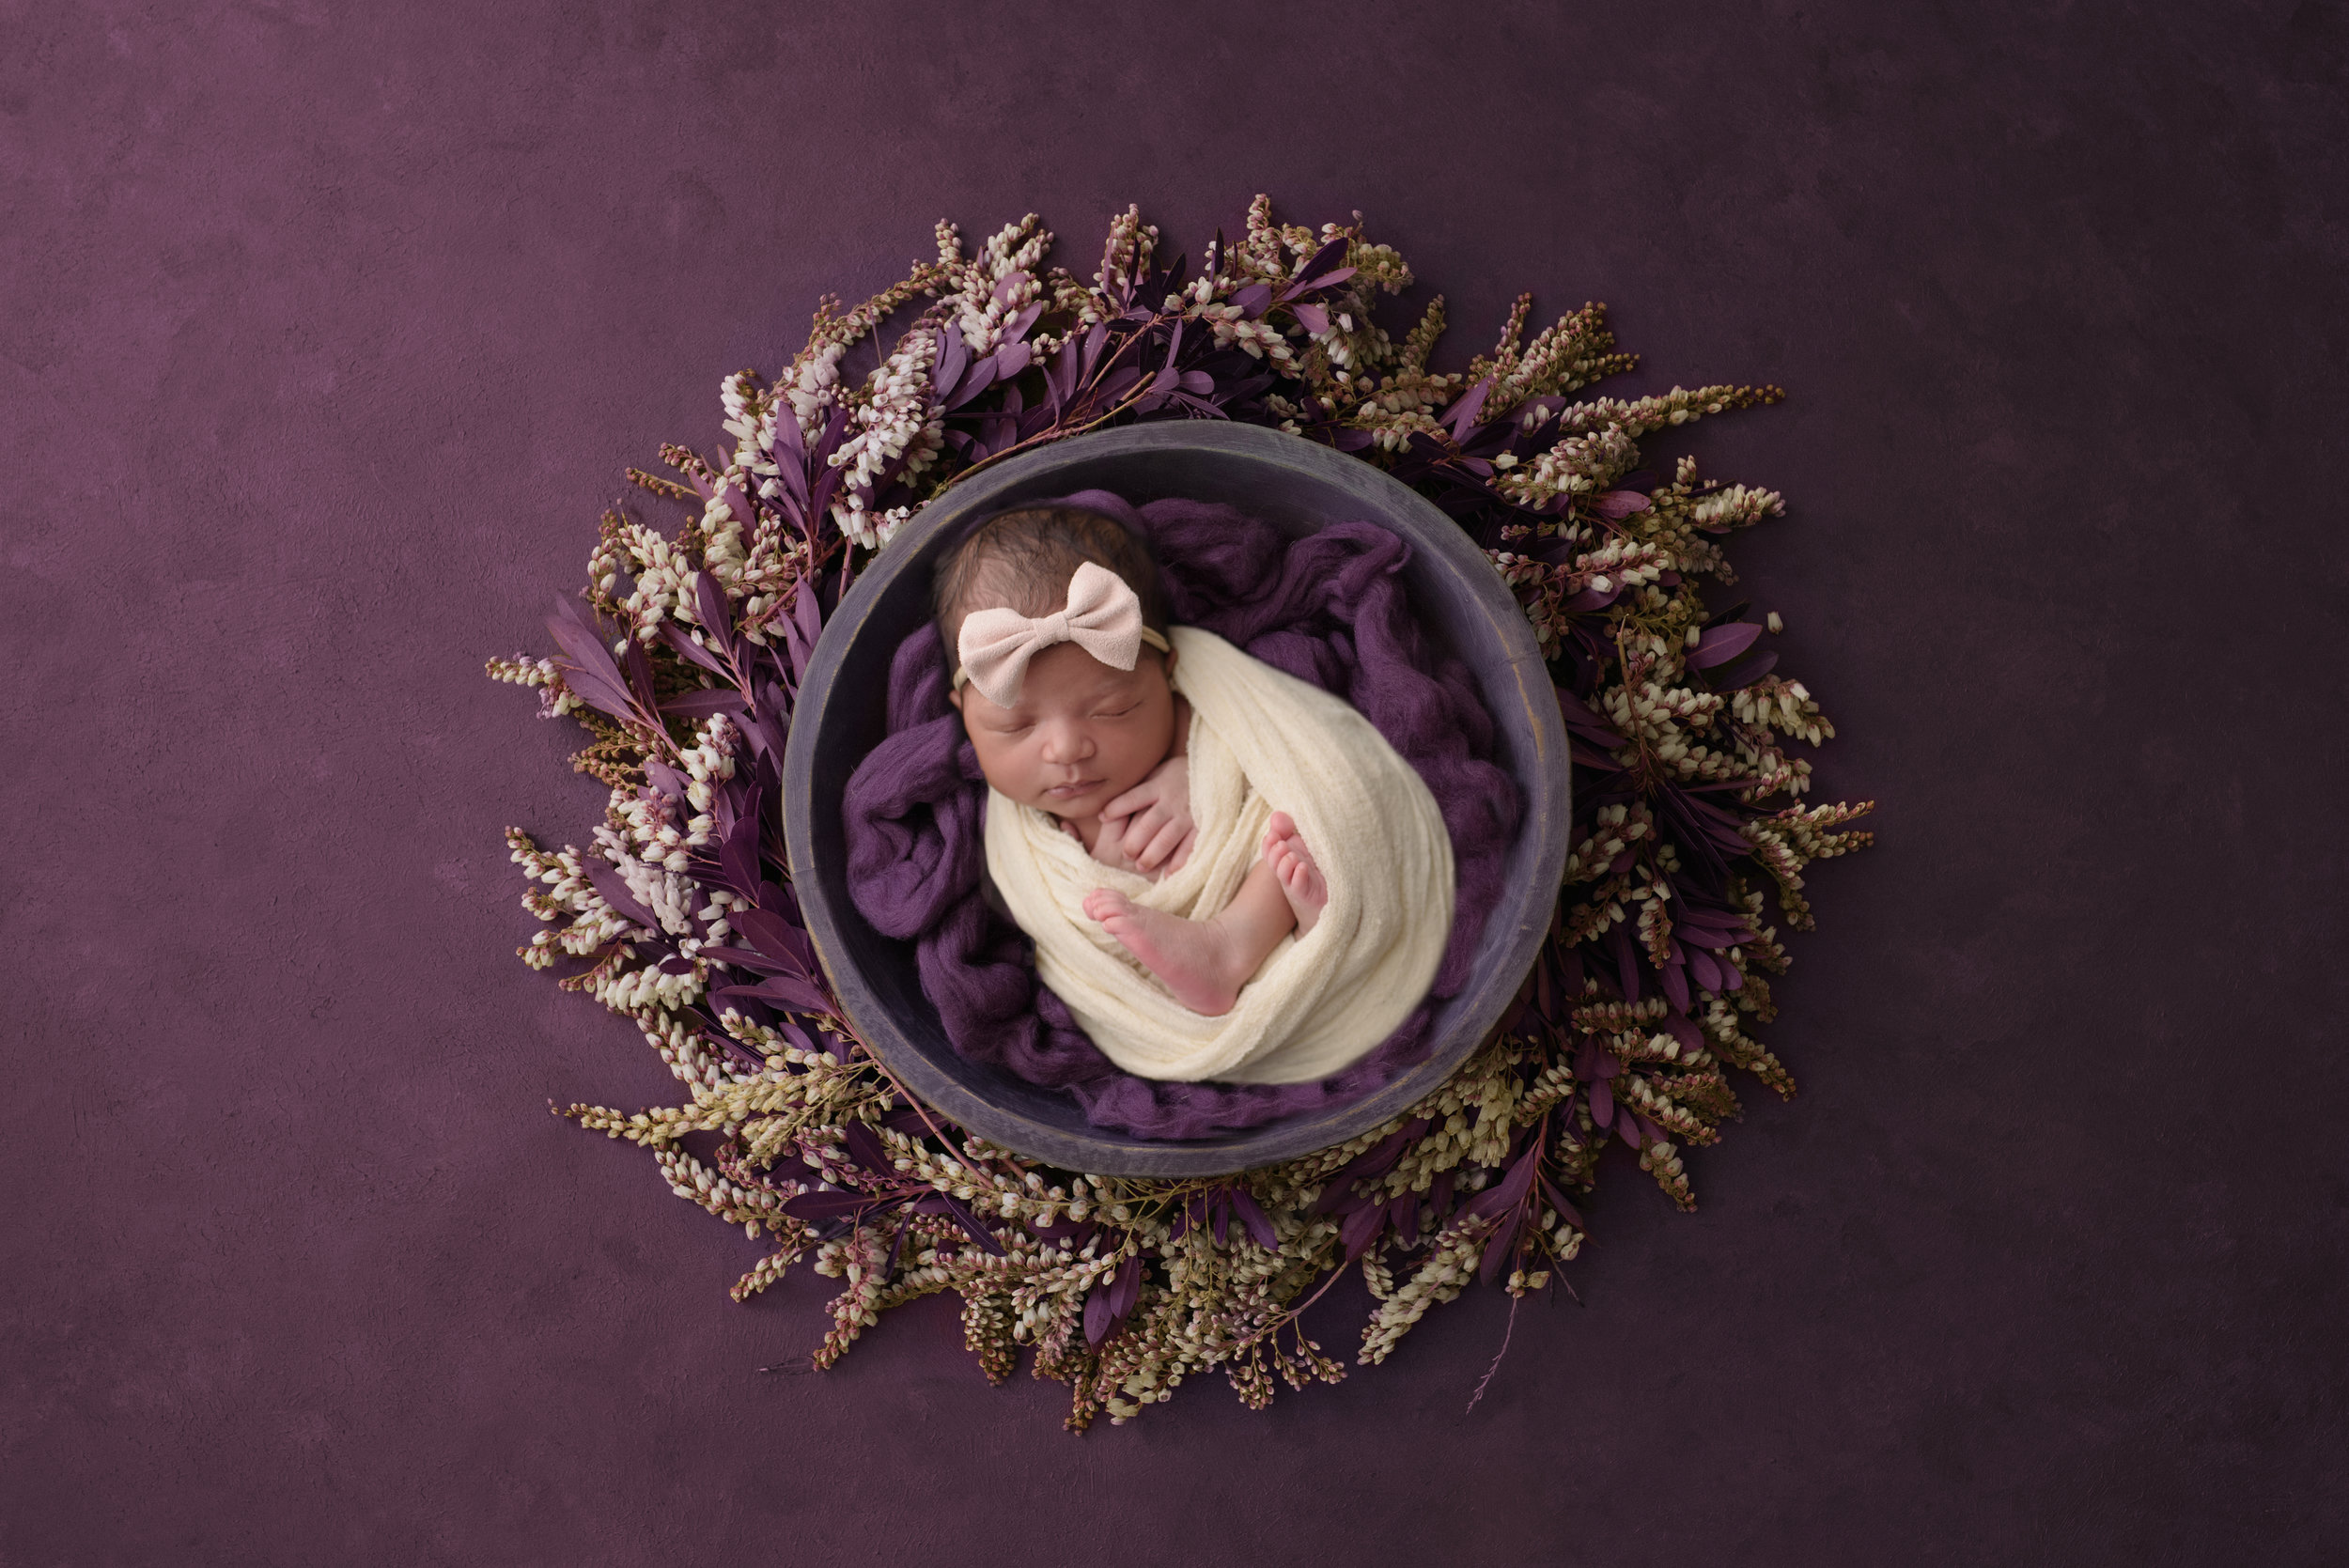 Heather Dimsdale newborn photographer poses baby girl with deep purple and cream props.